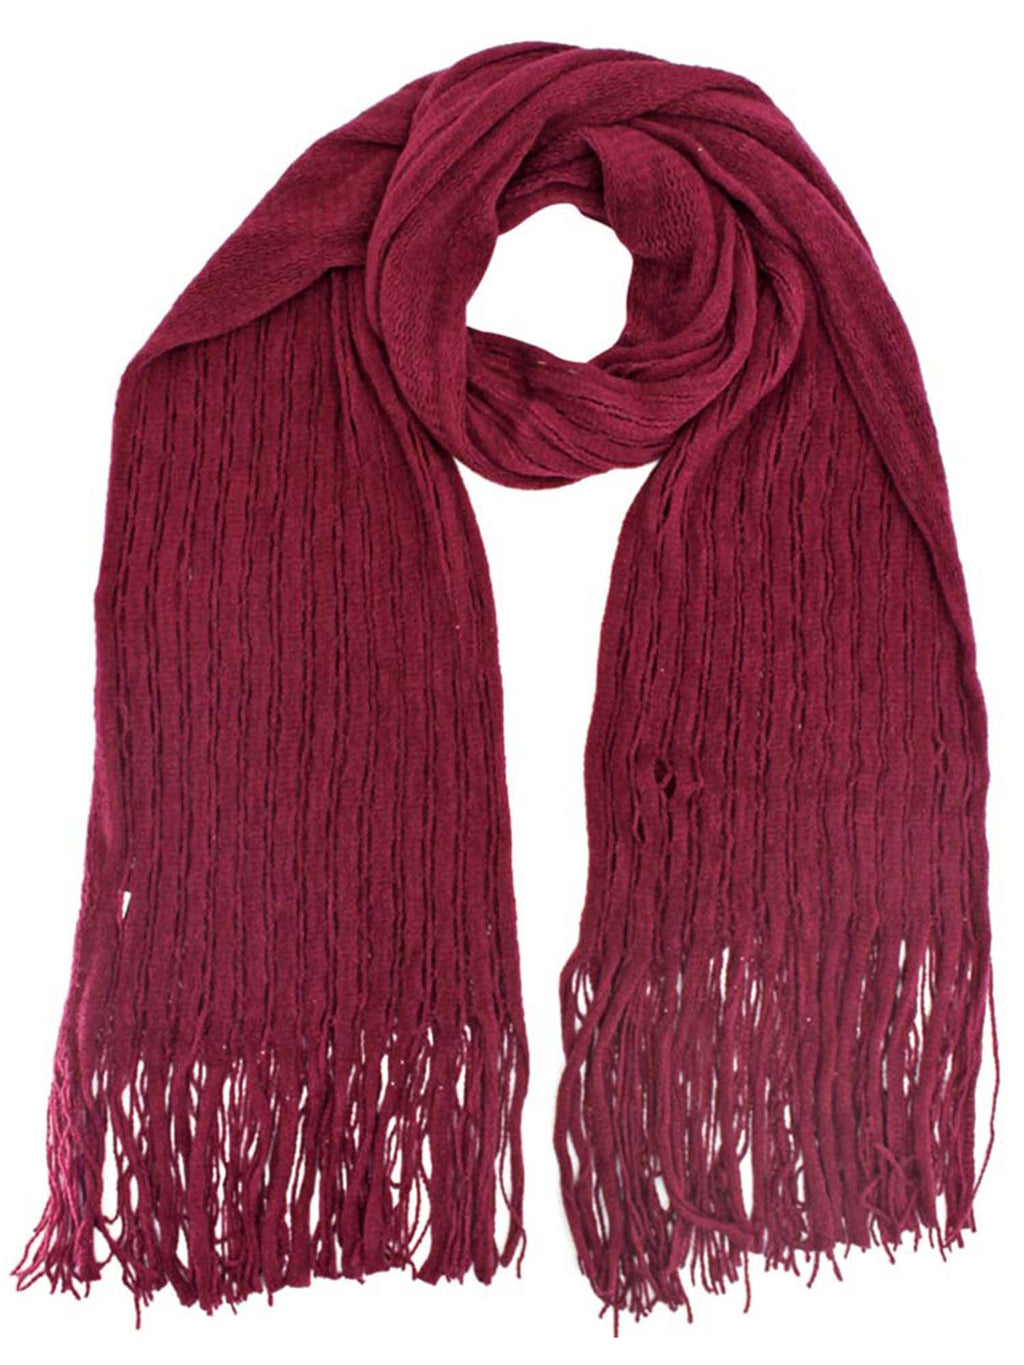 Wispy Fringe Knit Winter Scarf